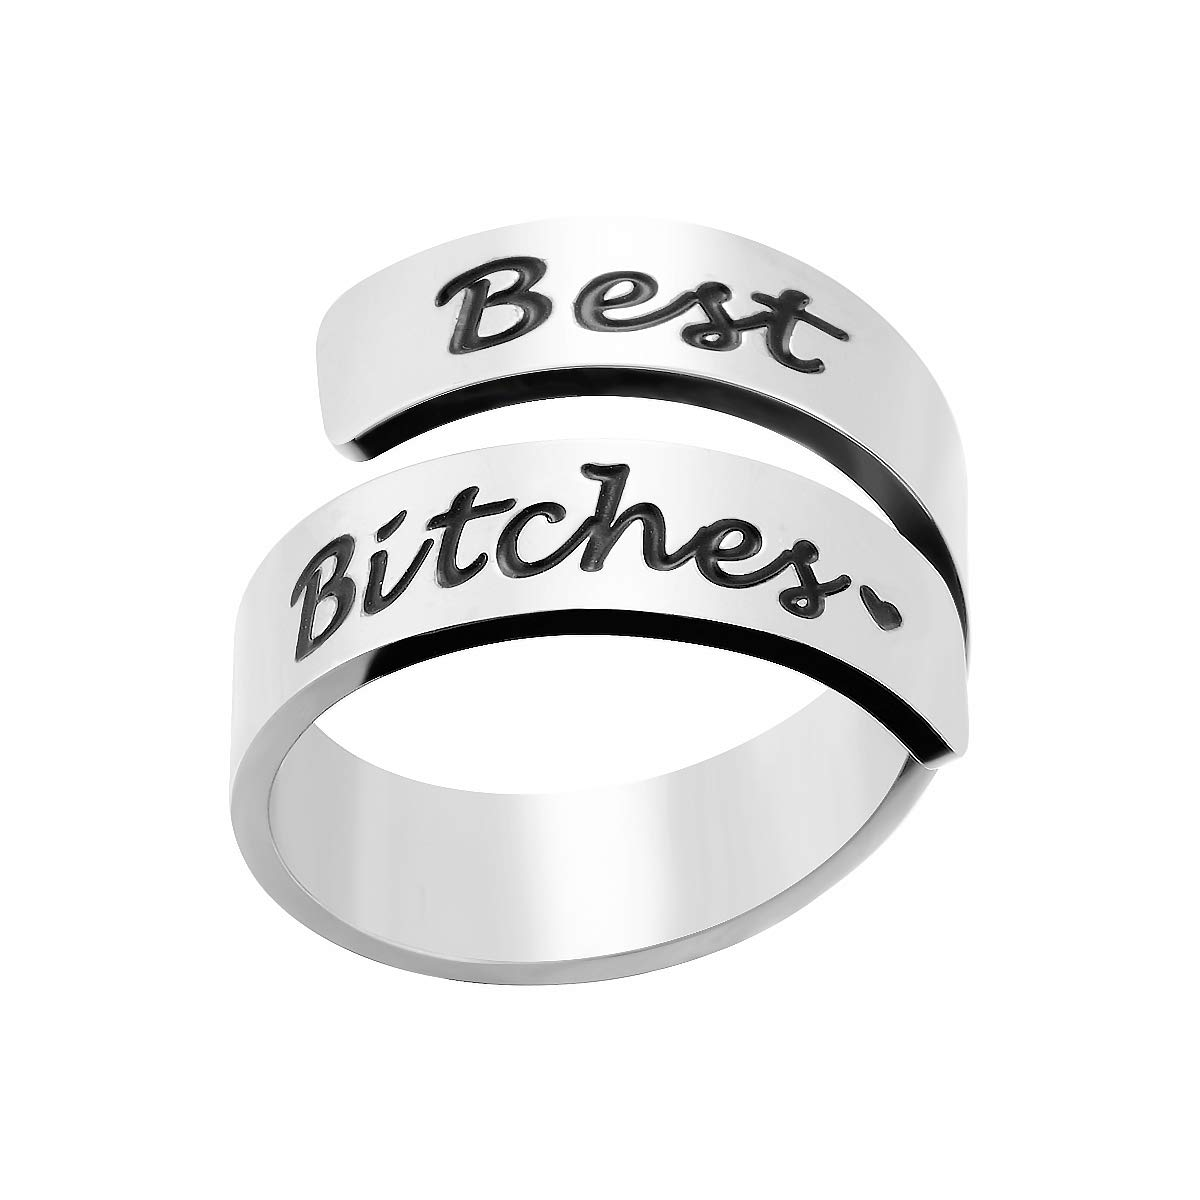 omodofo Inspirational Motivational Ring Adjustable Personalized Stainless Steel Spiral Wrap Twist Ring Encouragement Personalized Jewelry Birthday Gifts for Girls